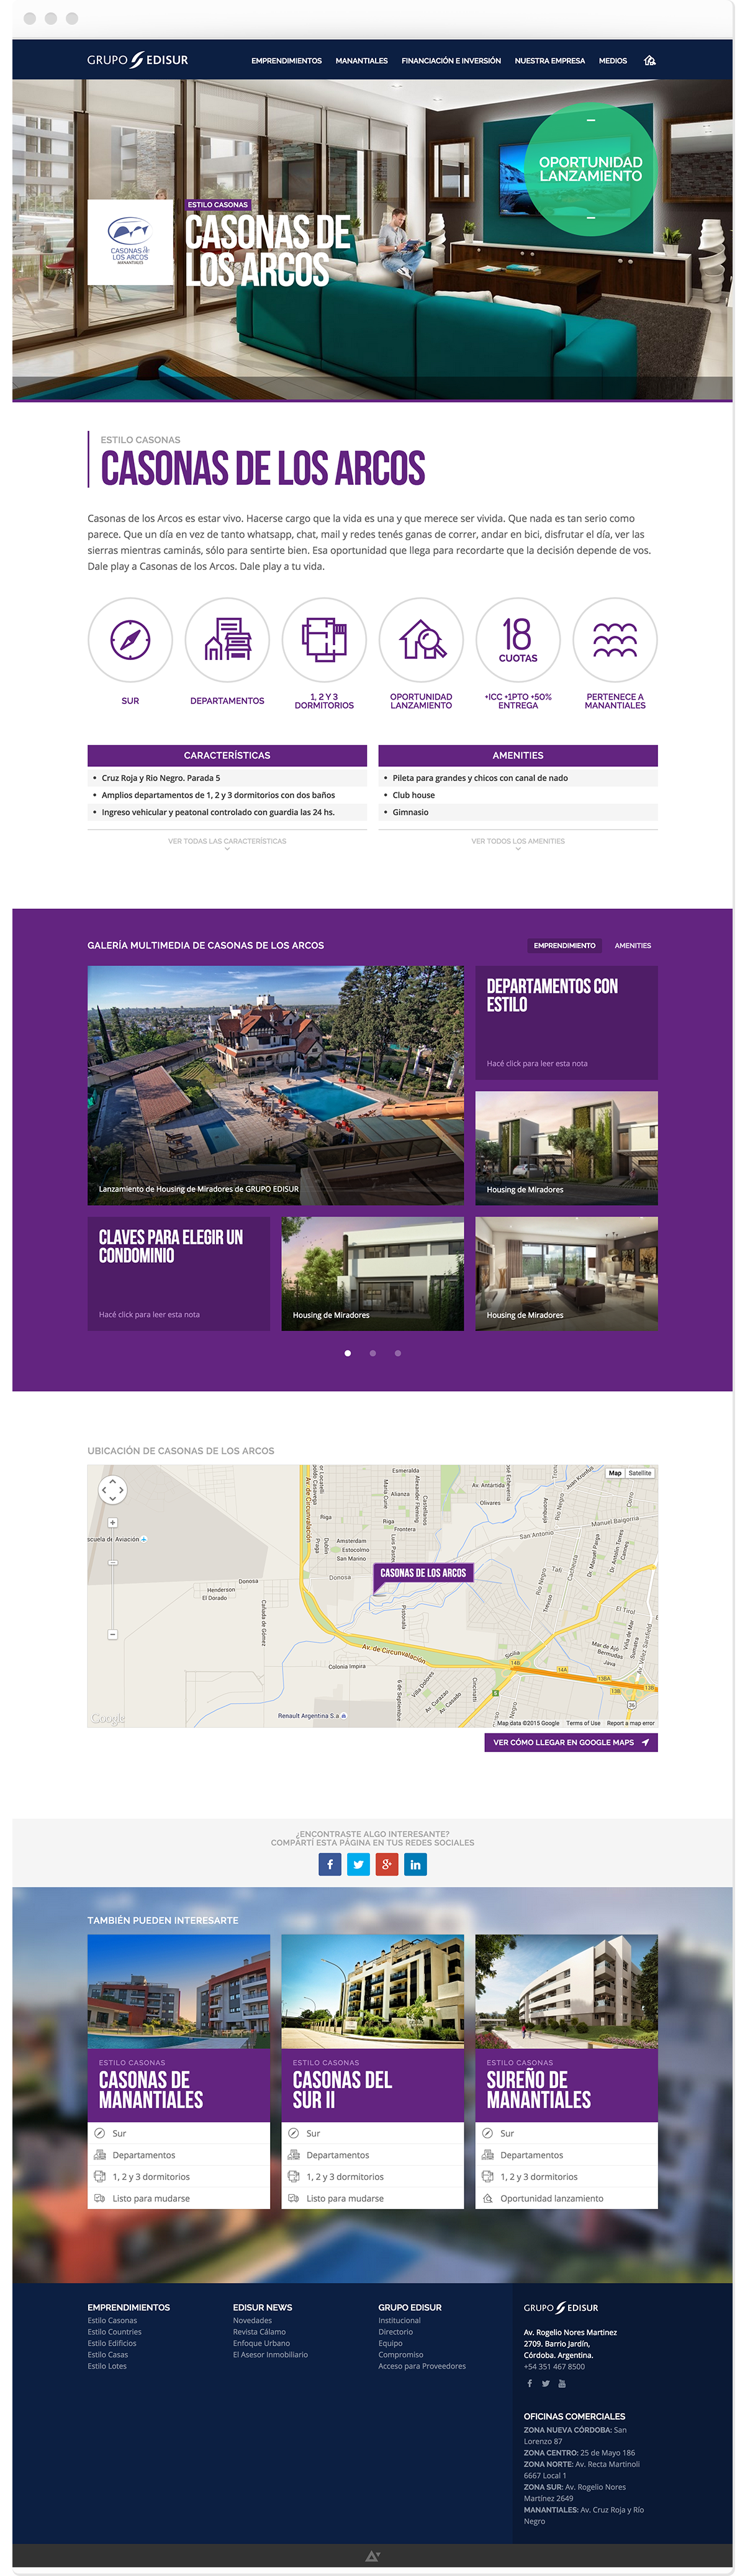 icons Responsive Web map flat line icons Interface gallery colors real estate